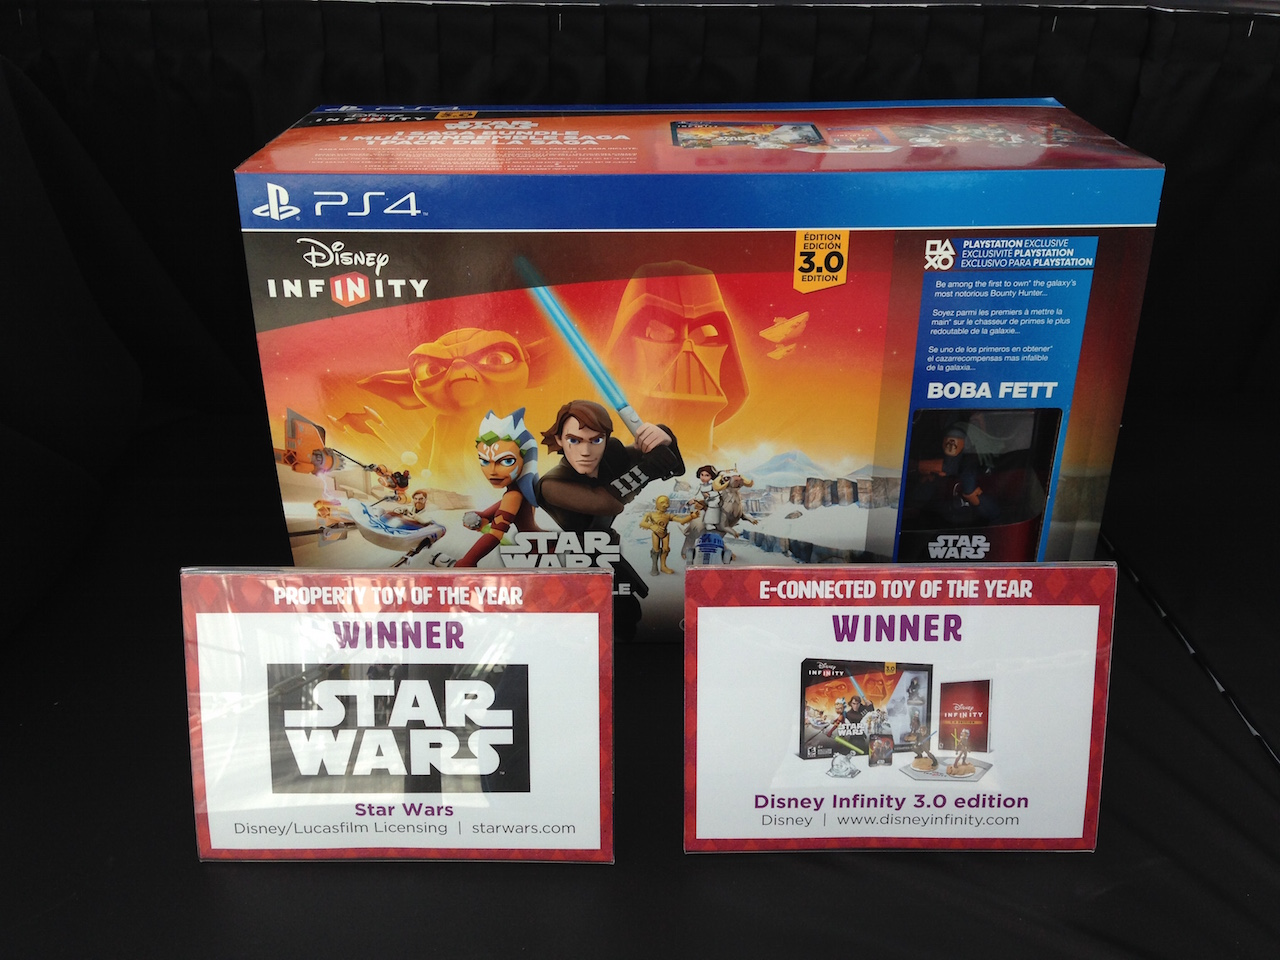 Disney Infinity 3.0 Edition - Star Wars